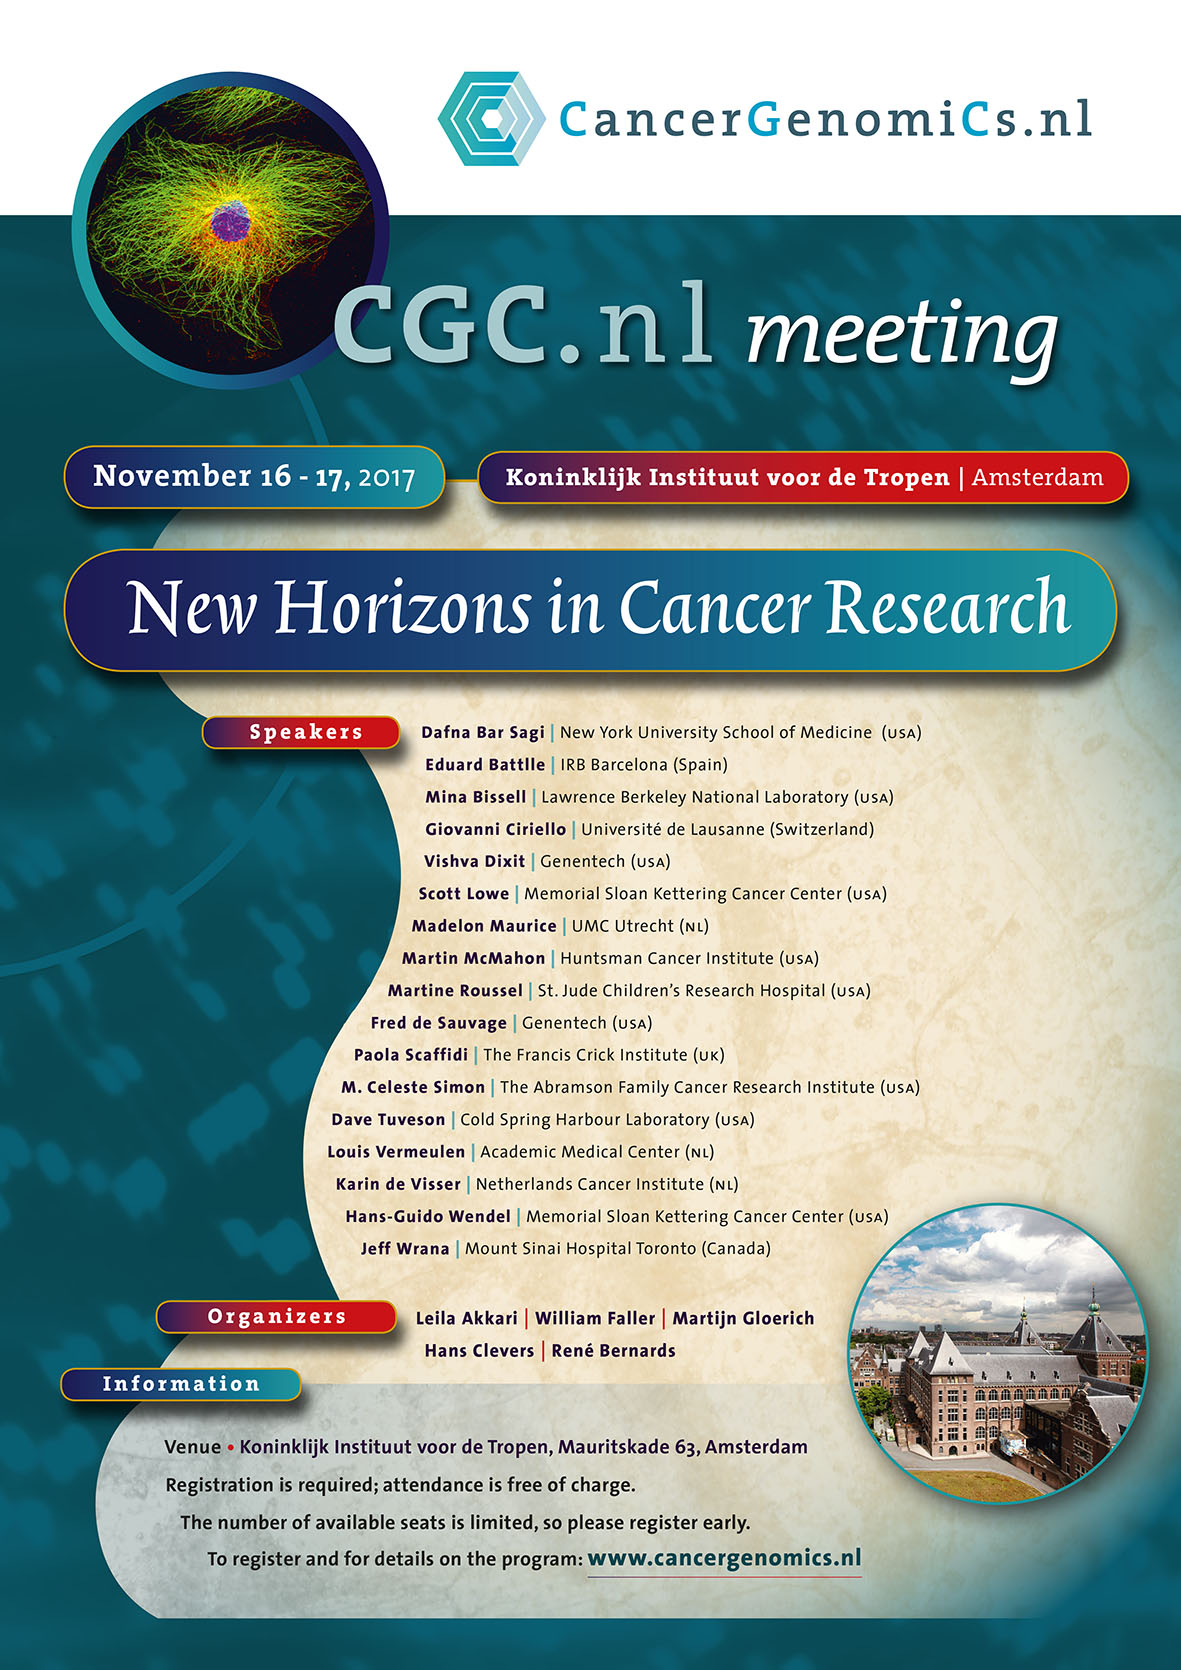 CGC annual meeting